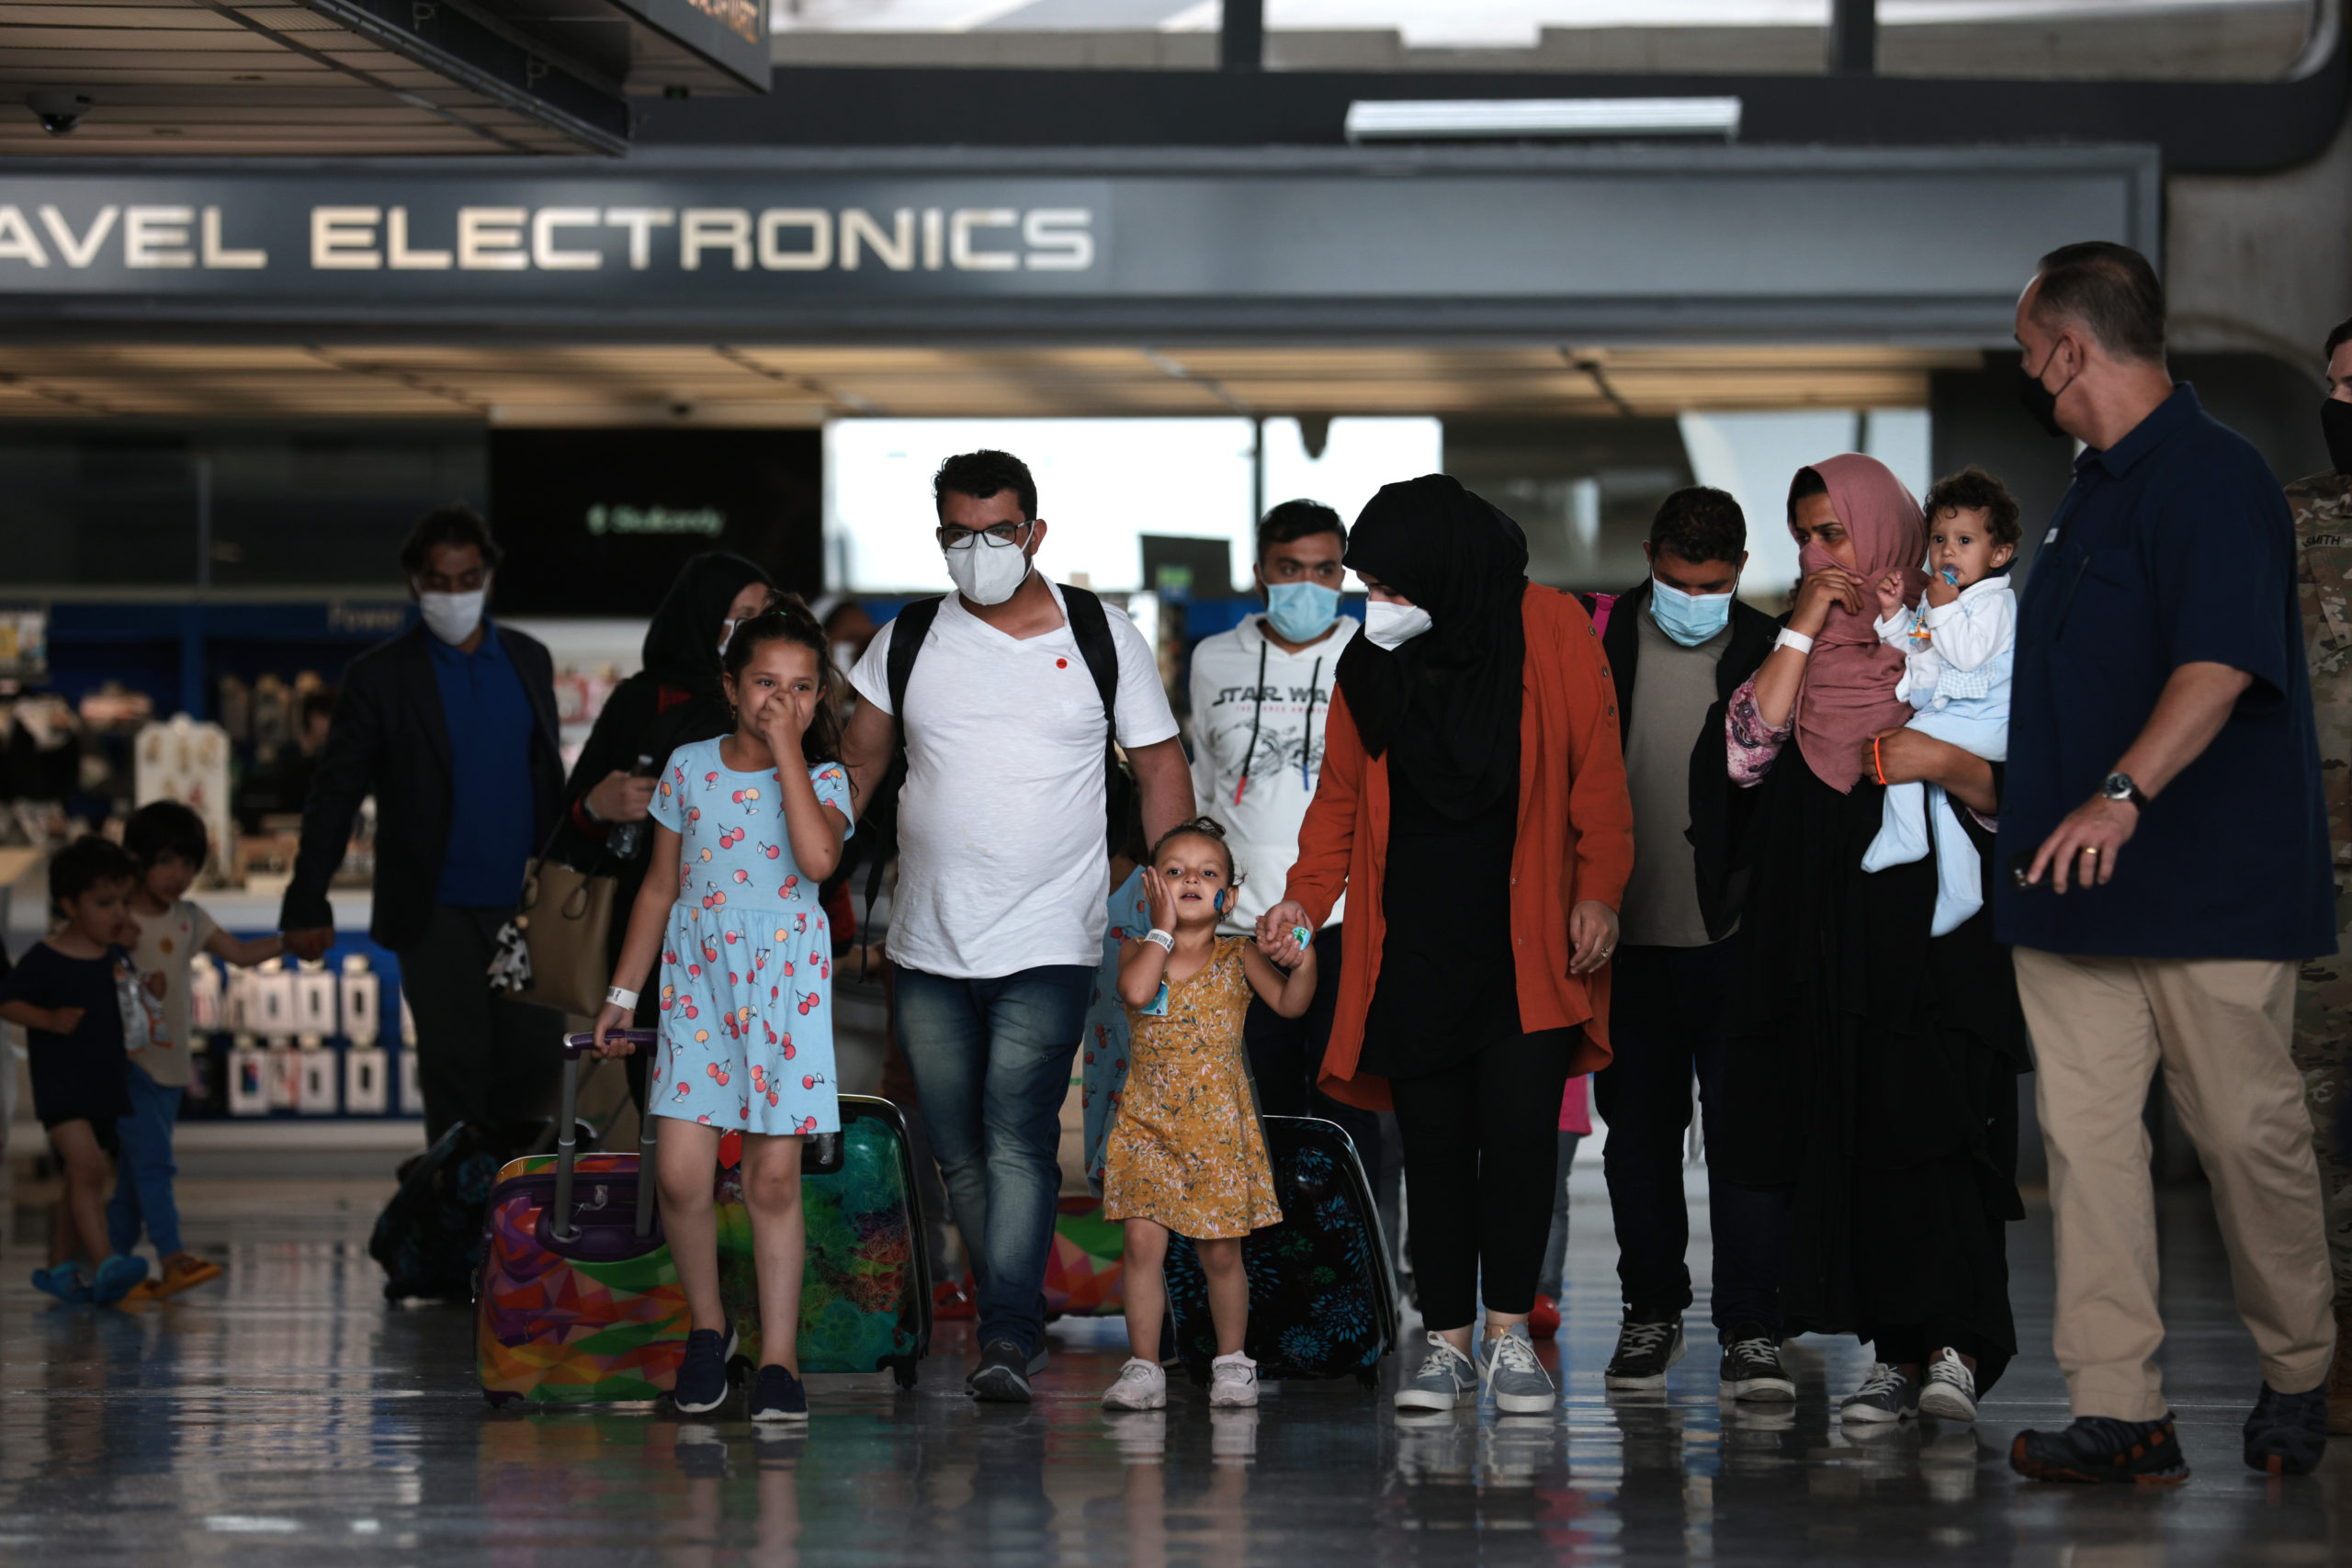 Refugees are led through the departure terminal to a bus at Dulles International Airport after being evacuated from Kabul following the Taliban takeover of Afghanistan on August 31, 2021 in Dulles, Virginia. (Photo by Anna Moneymaker/Getty Images)